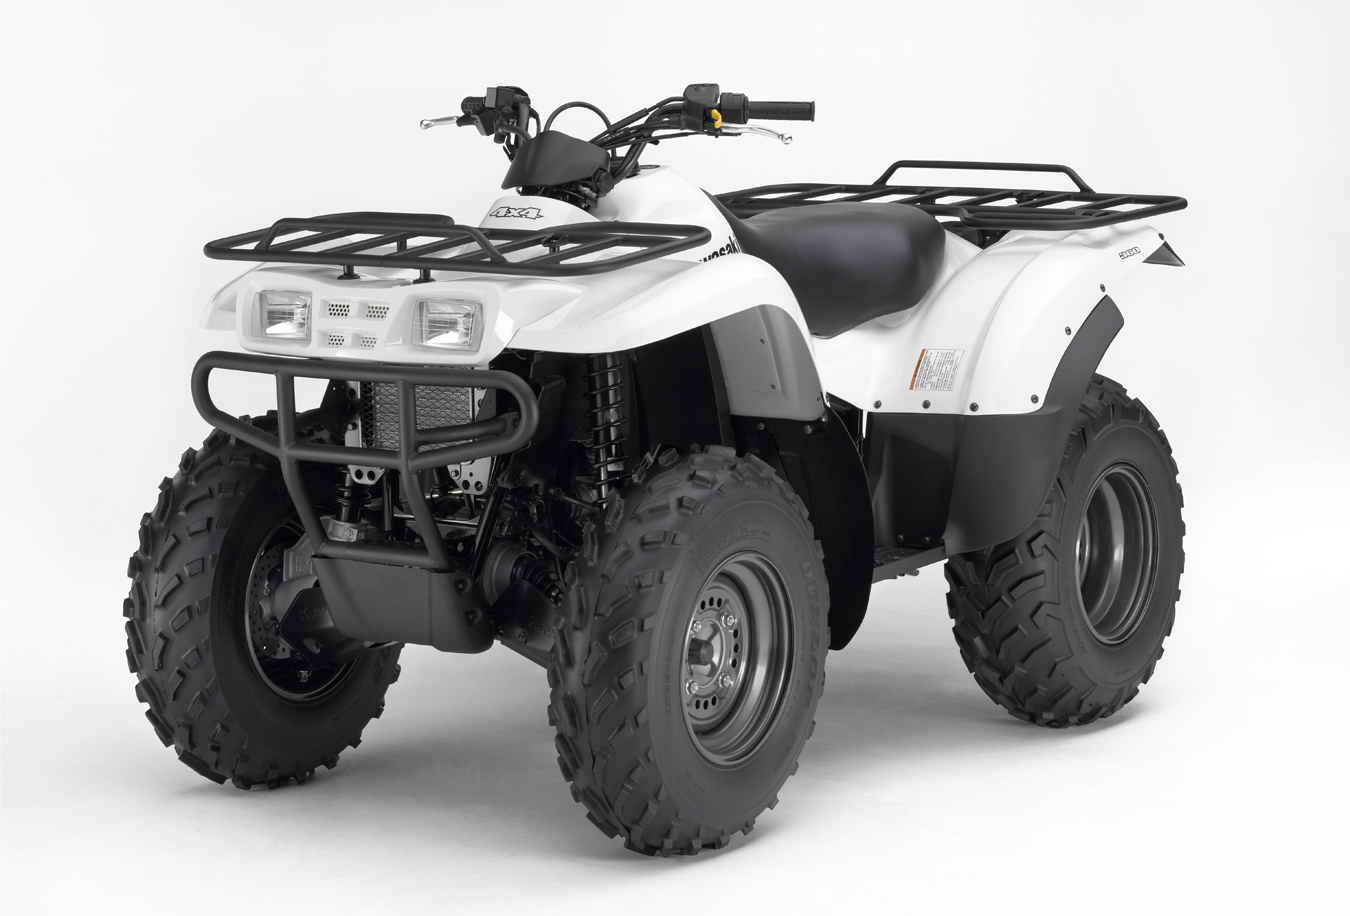 2007 Kawasaki Prairie 360 4X4 | Top Speed